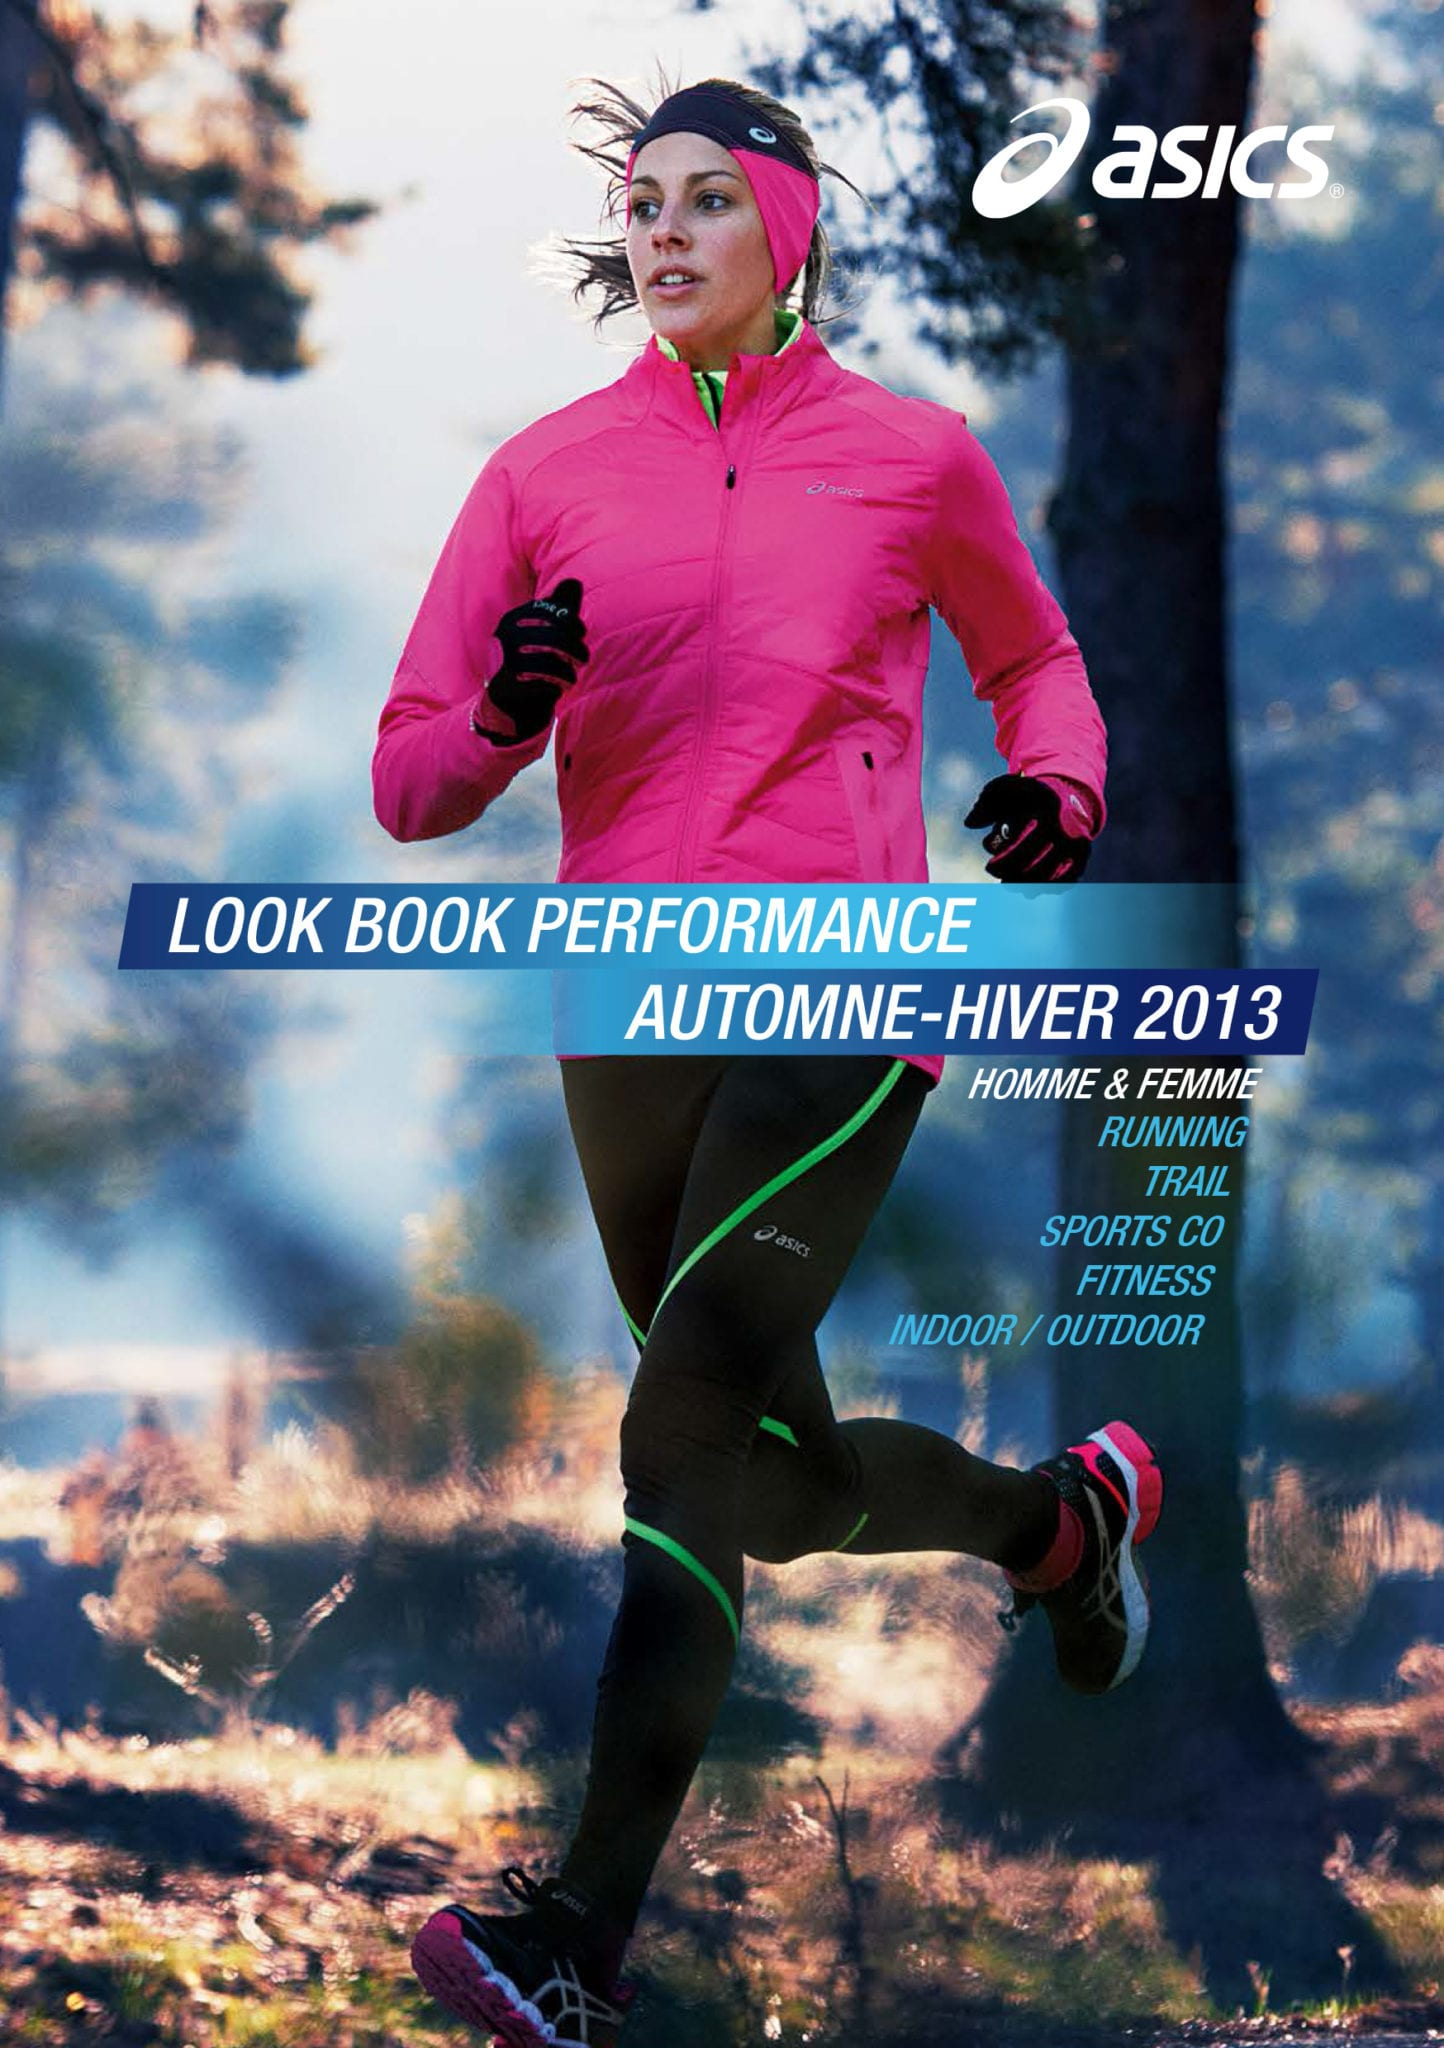 ASICS-LookBook300x600